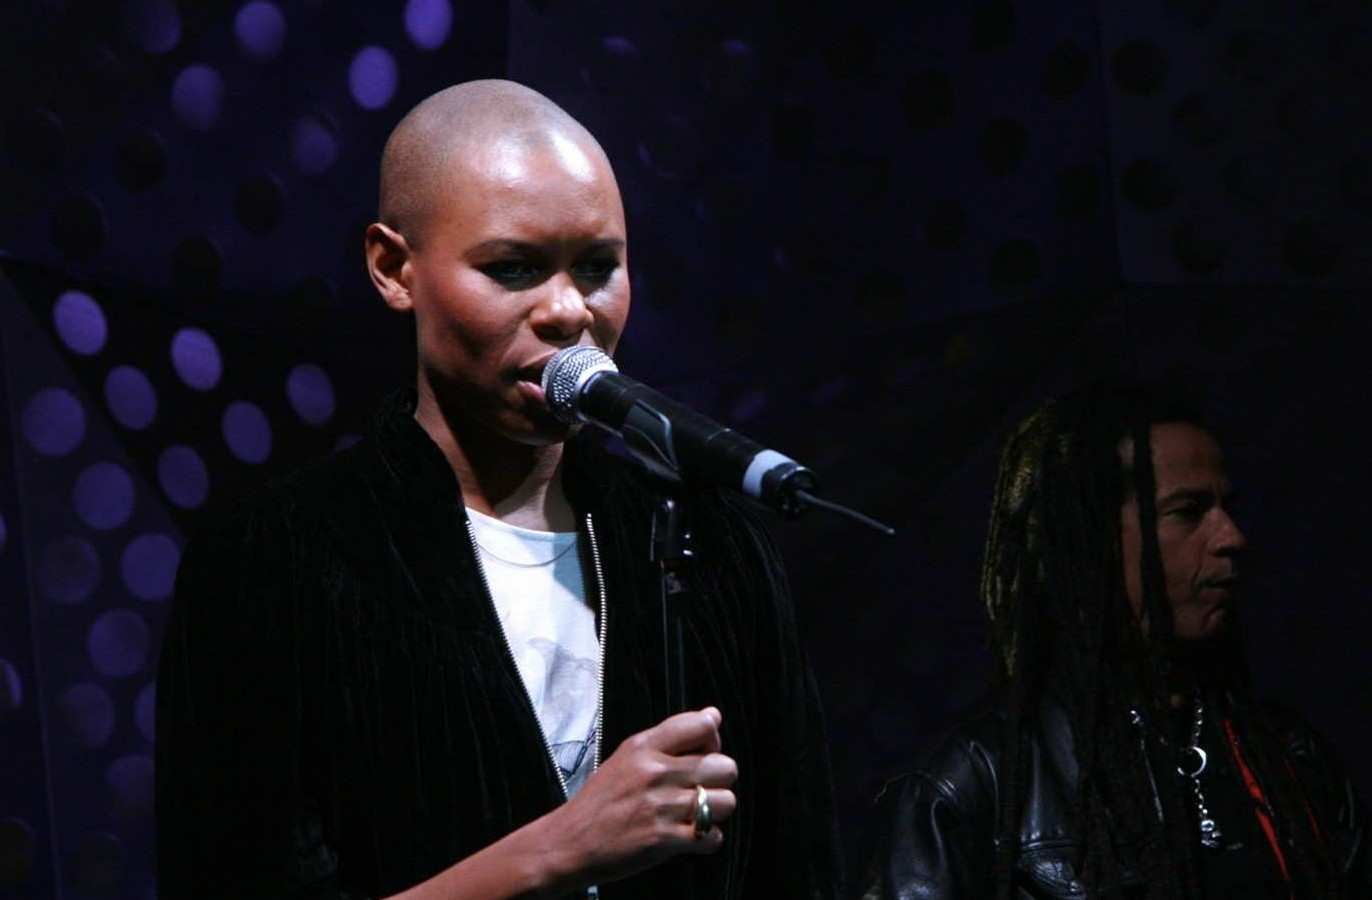 skunk-anansie-live@rds-la-reunion-img_4266a_largest